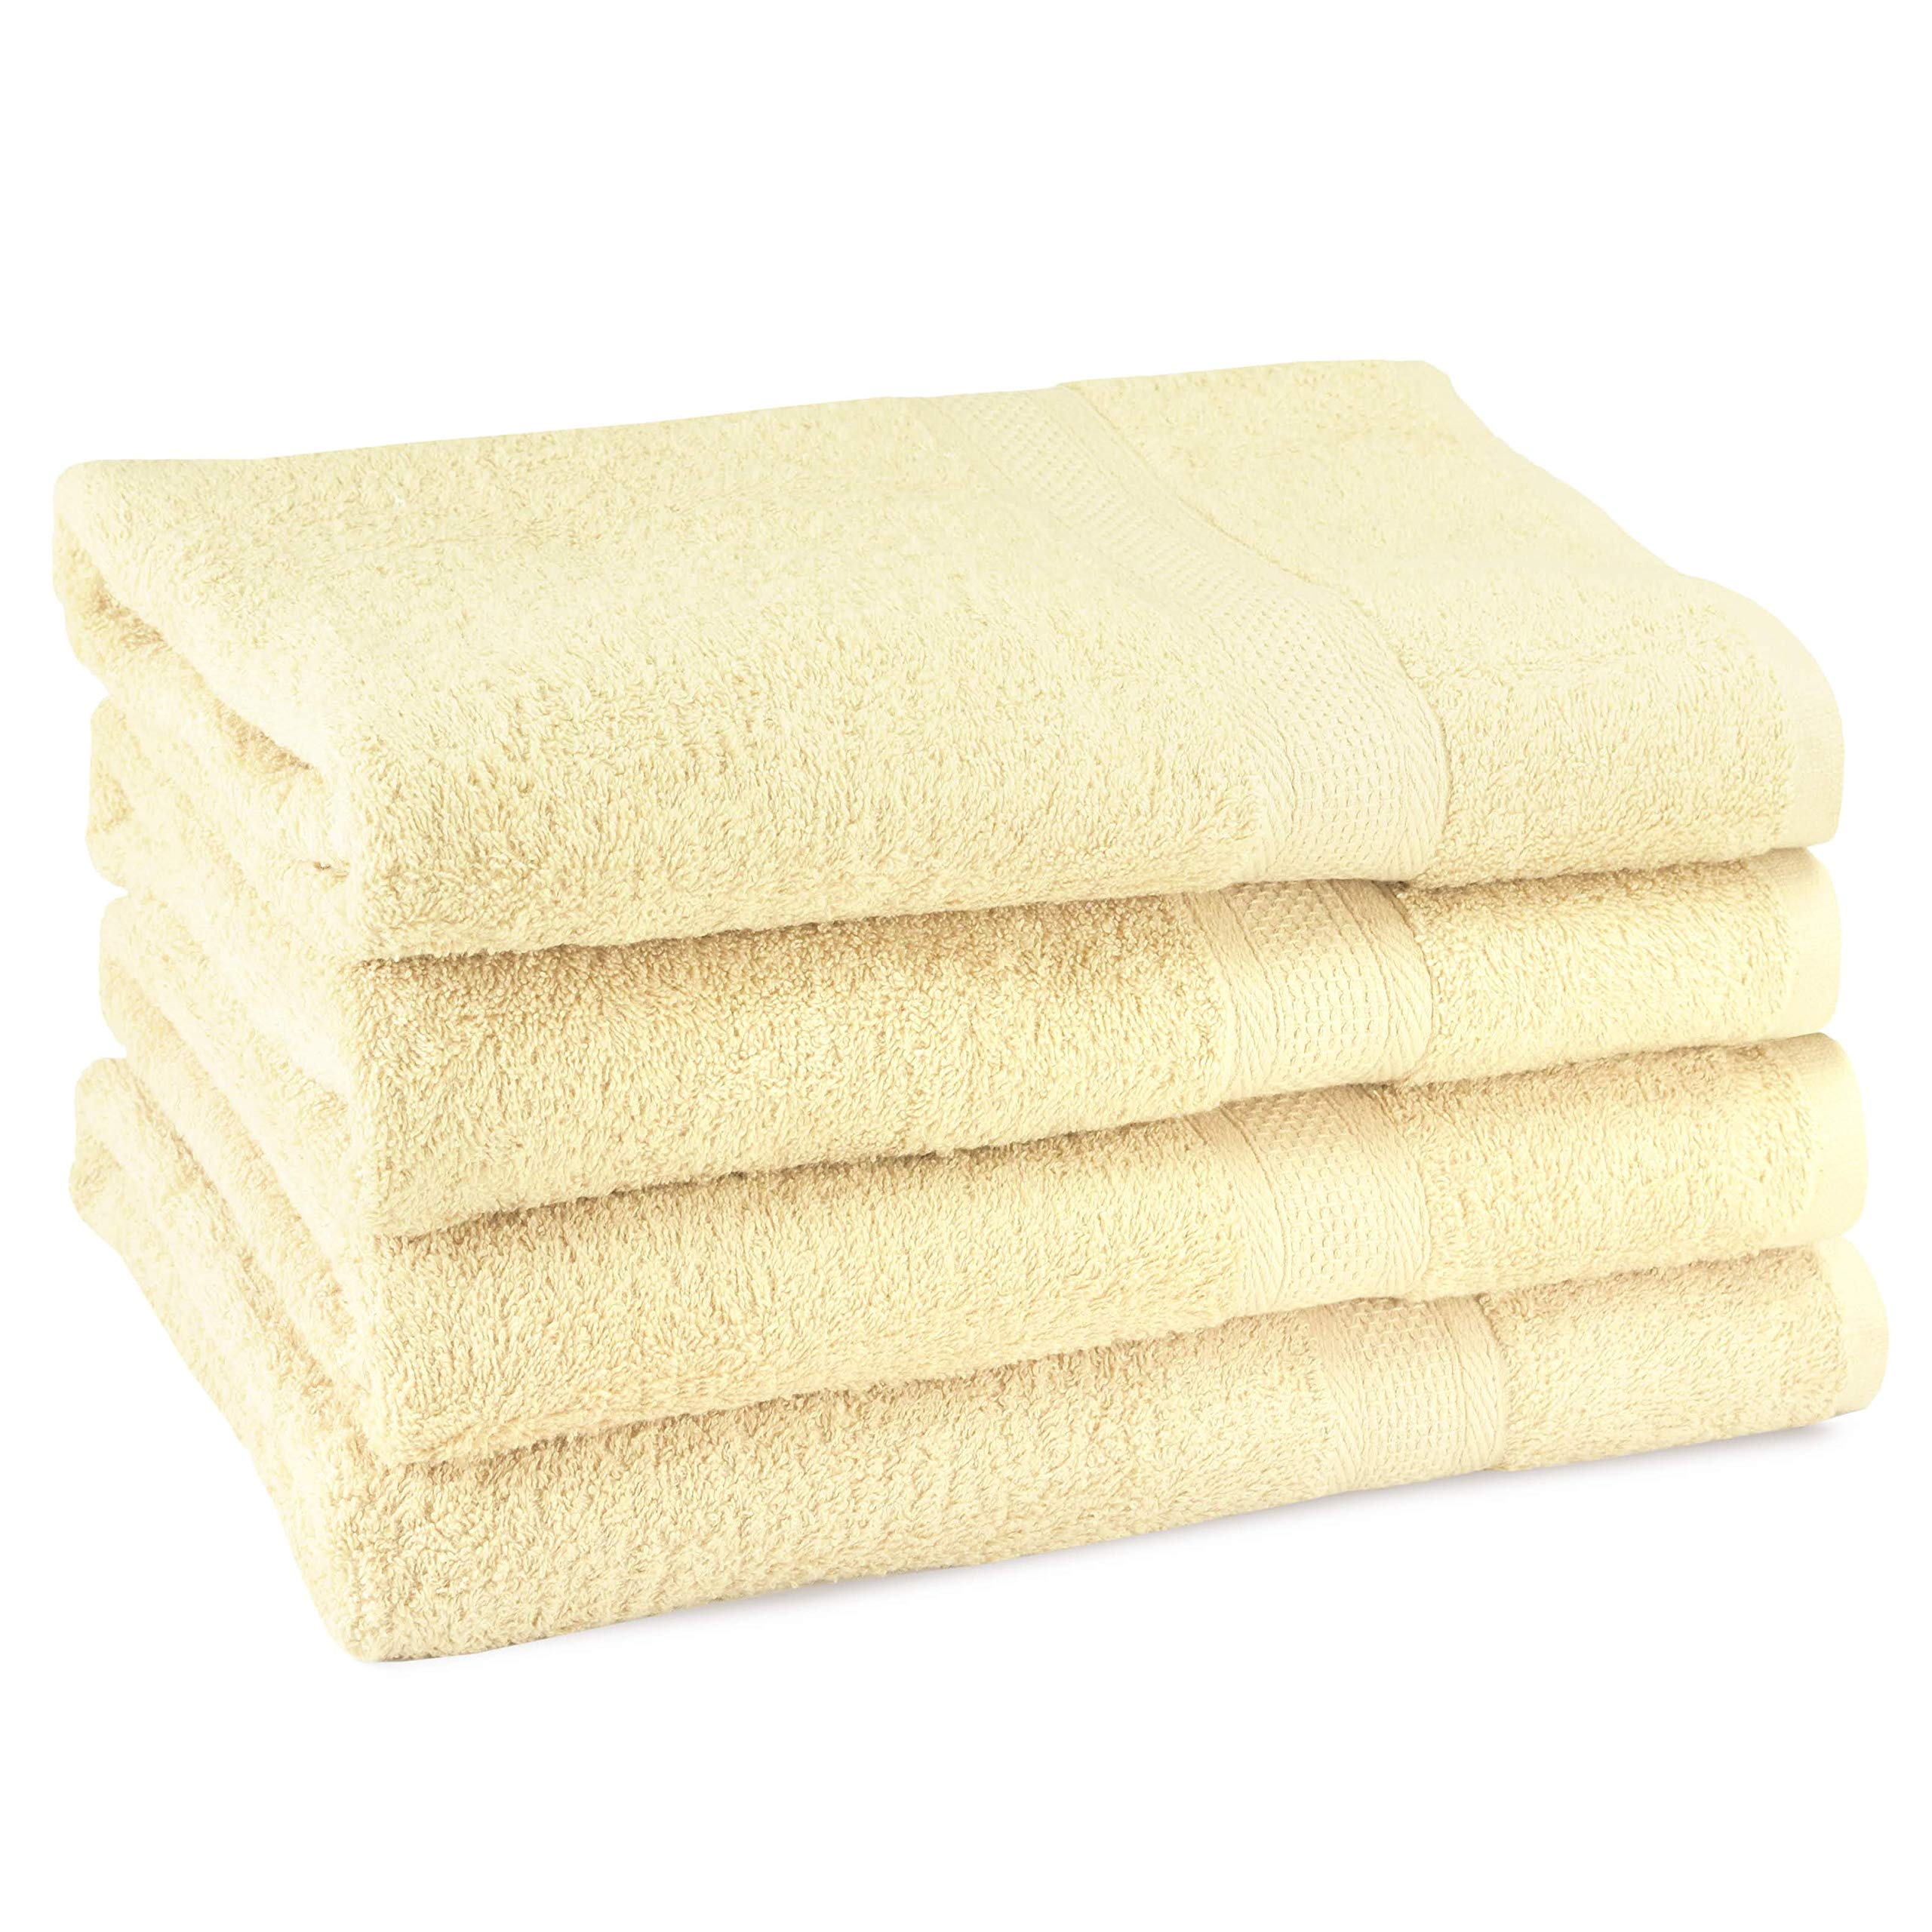 CrystalTowels Premium Bath Towels – 4 Pack - 27'' x 54''- 600 GSM - 100% Virgin Ringspun Cotton - Soft & Absorbent for Home Hotel Spa or Gym (Ivory)